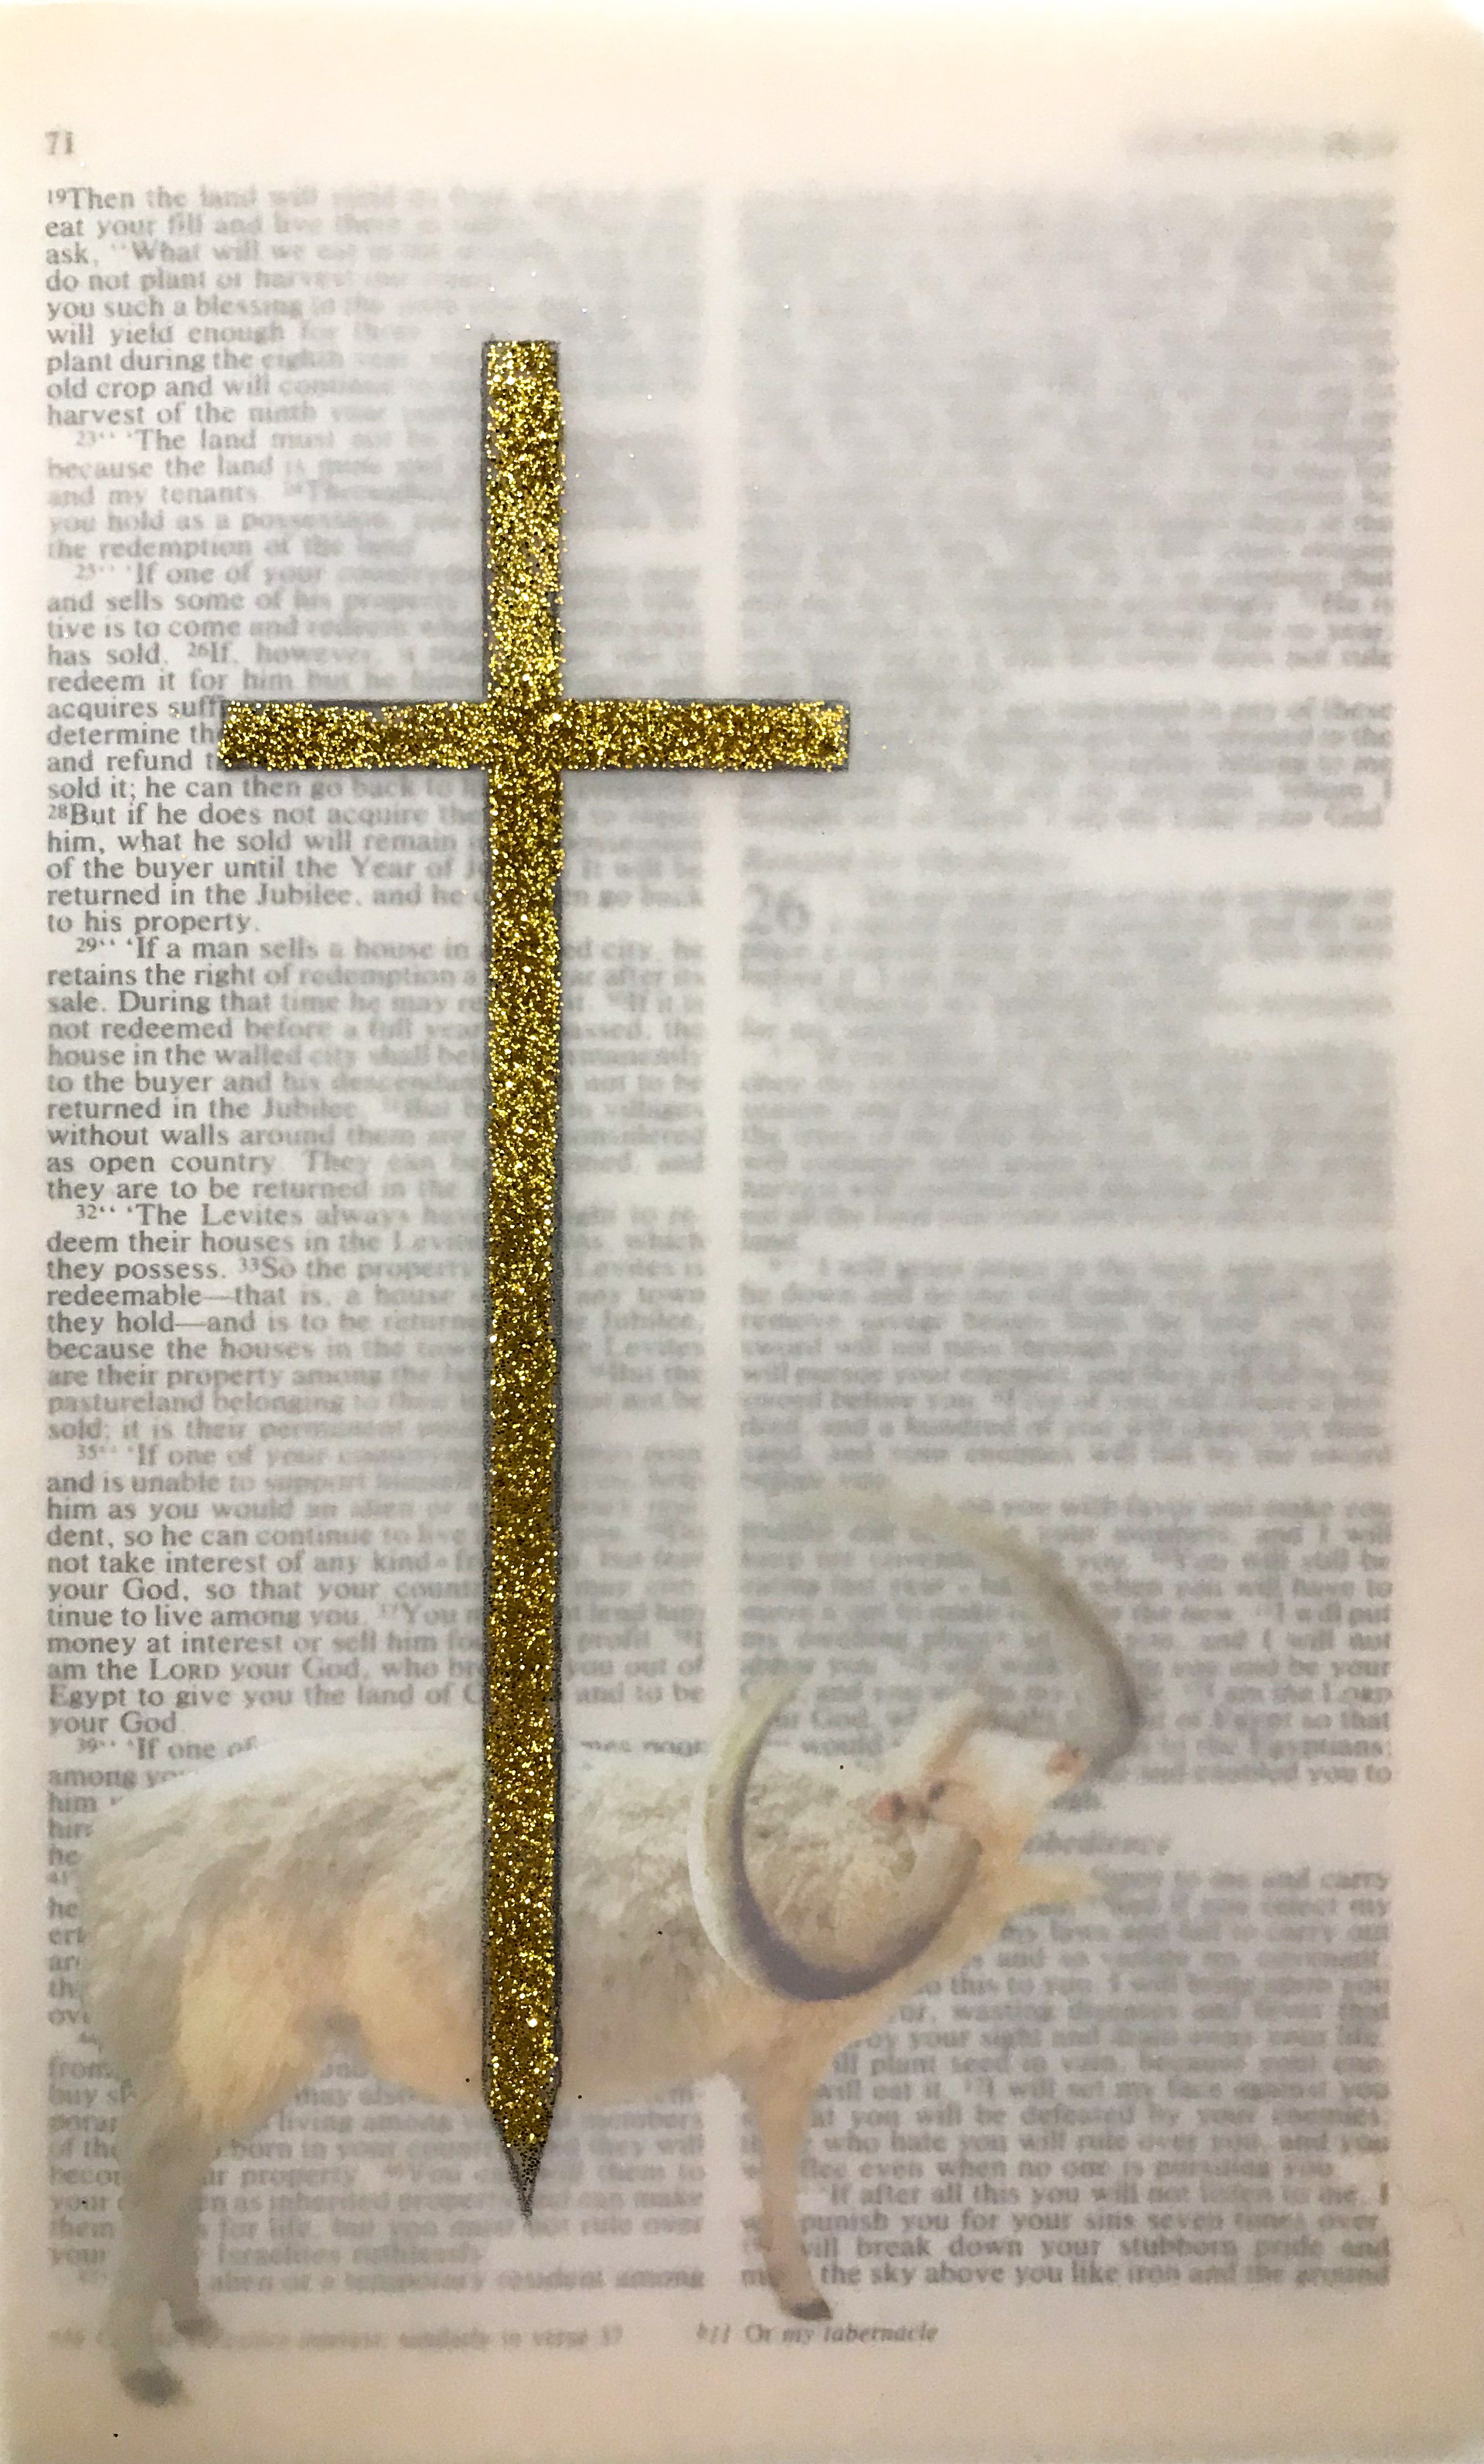 Obedience Collage, Glitter, and Vellum on Bible 2020